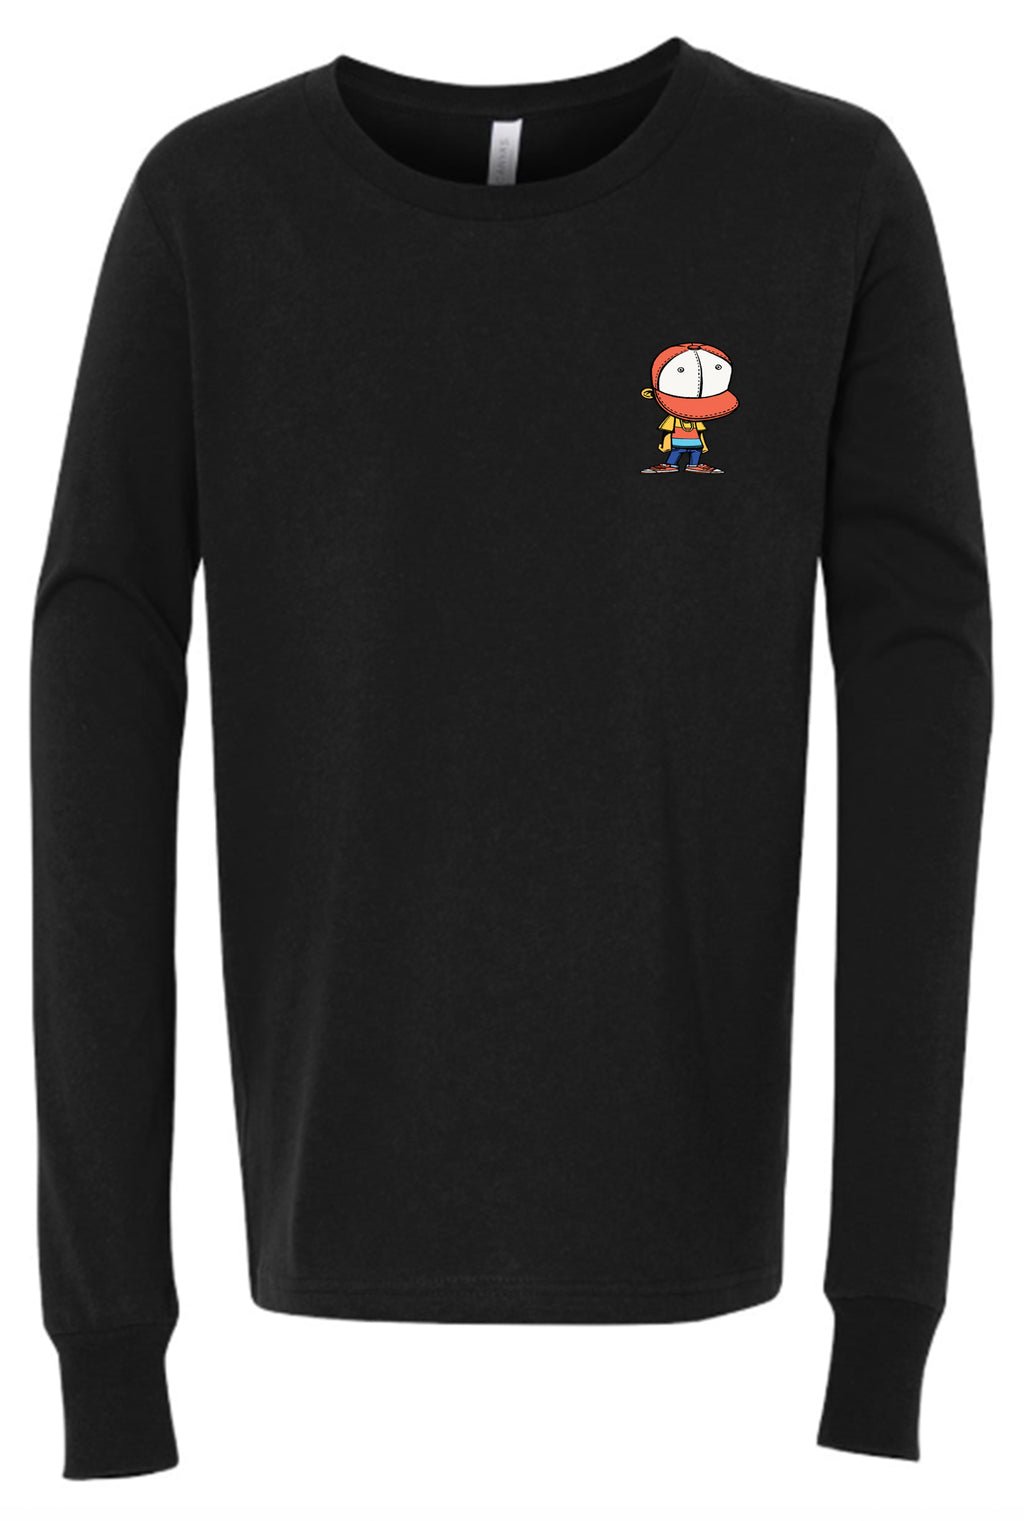 BHS2 Long Sleeve Patch T-Shirt